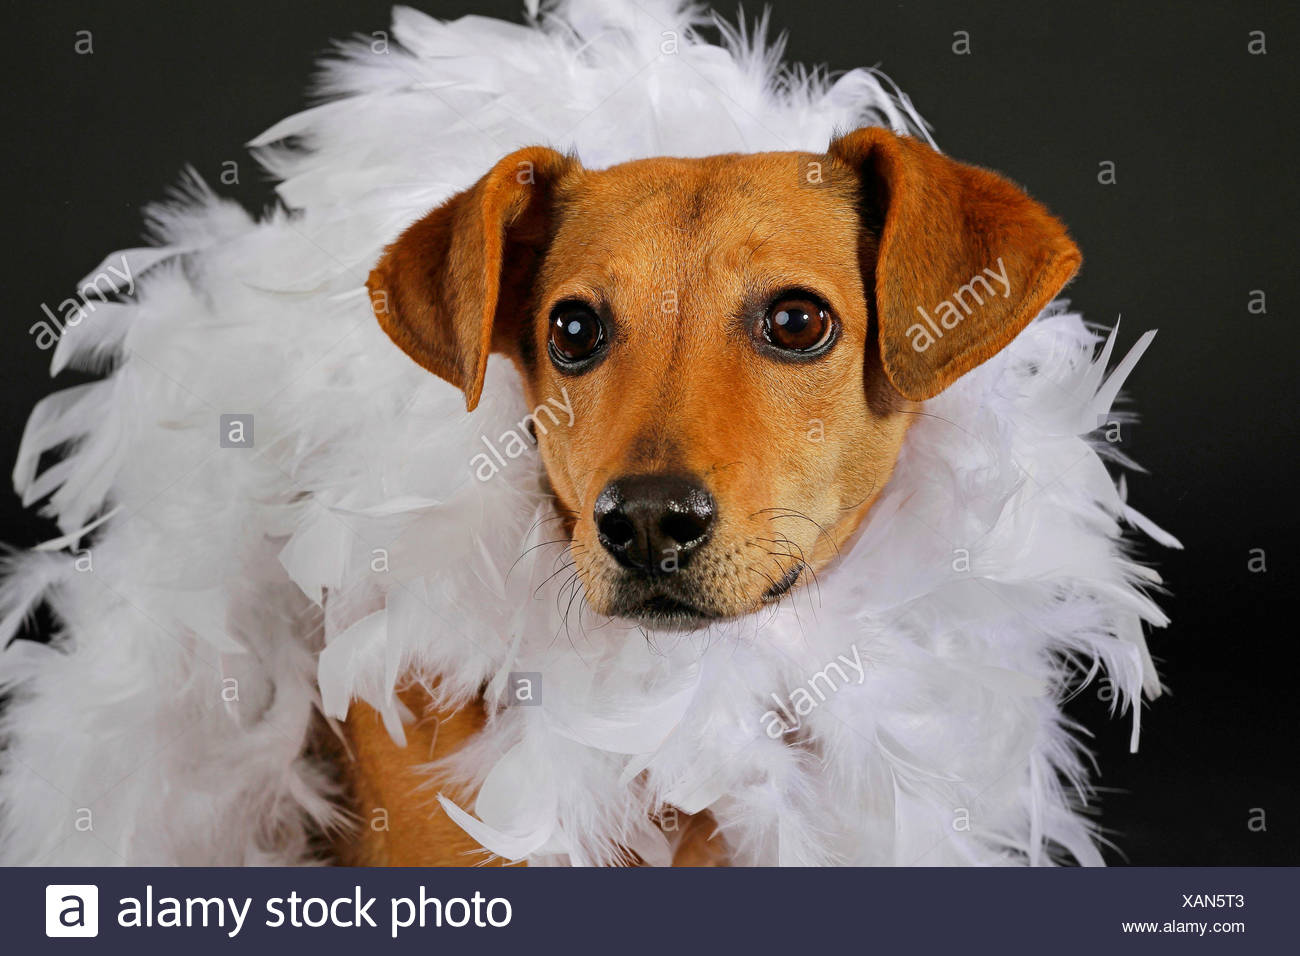 domestic dog (Canis lupus f. familiaris), with white feather boa in front of black background, portrait - Stock Image